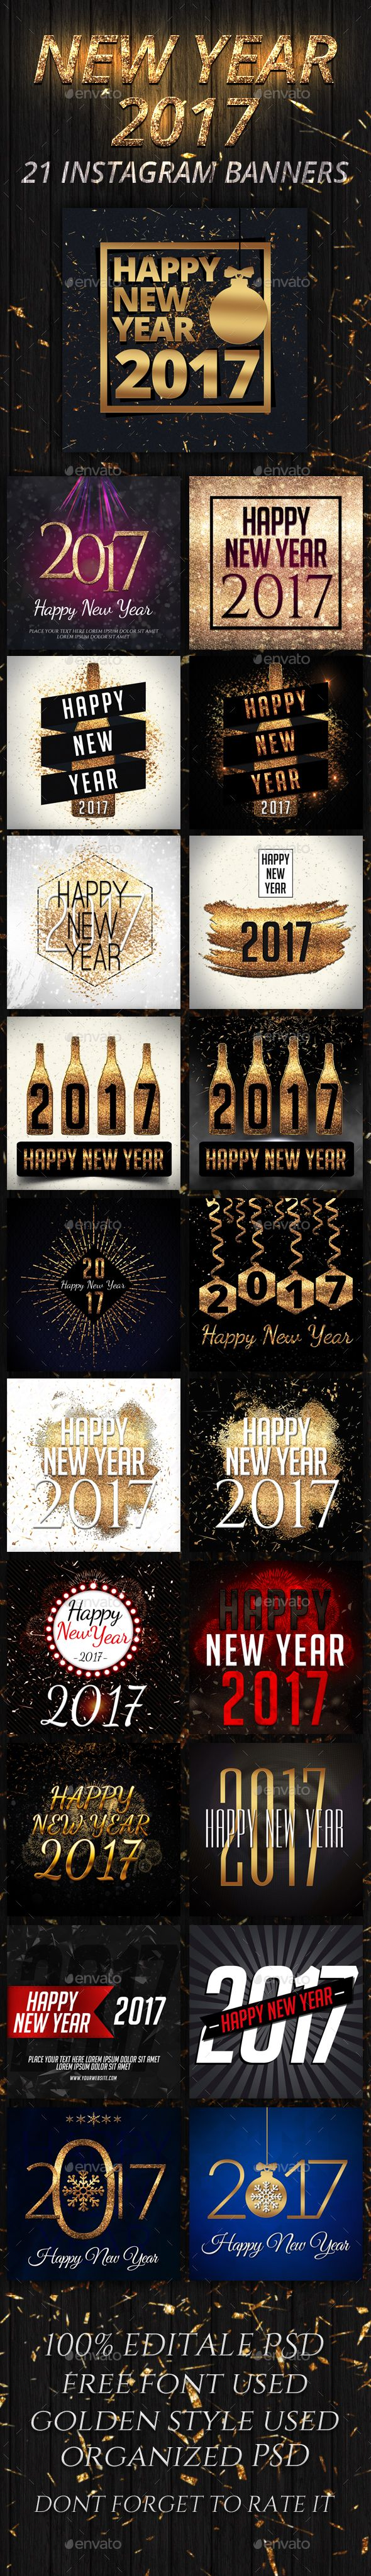 New Year 21 Instagram Banners Template PSD #ads #nye